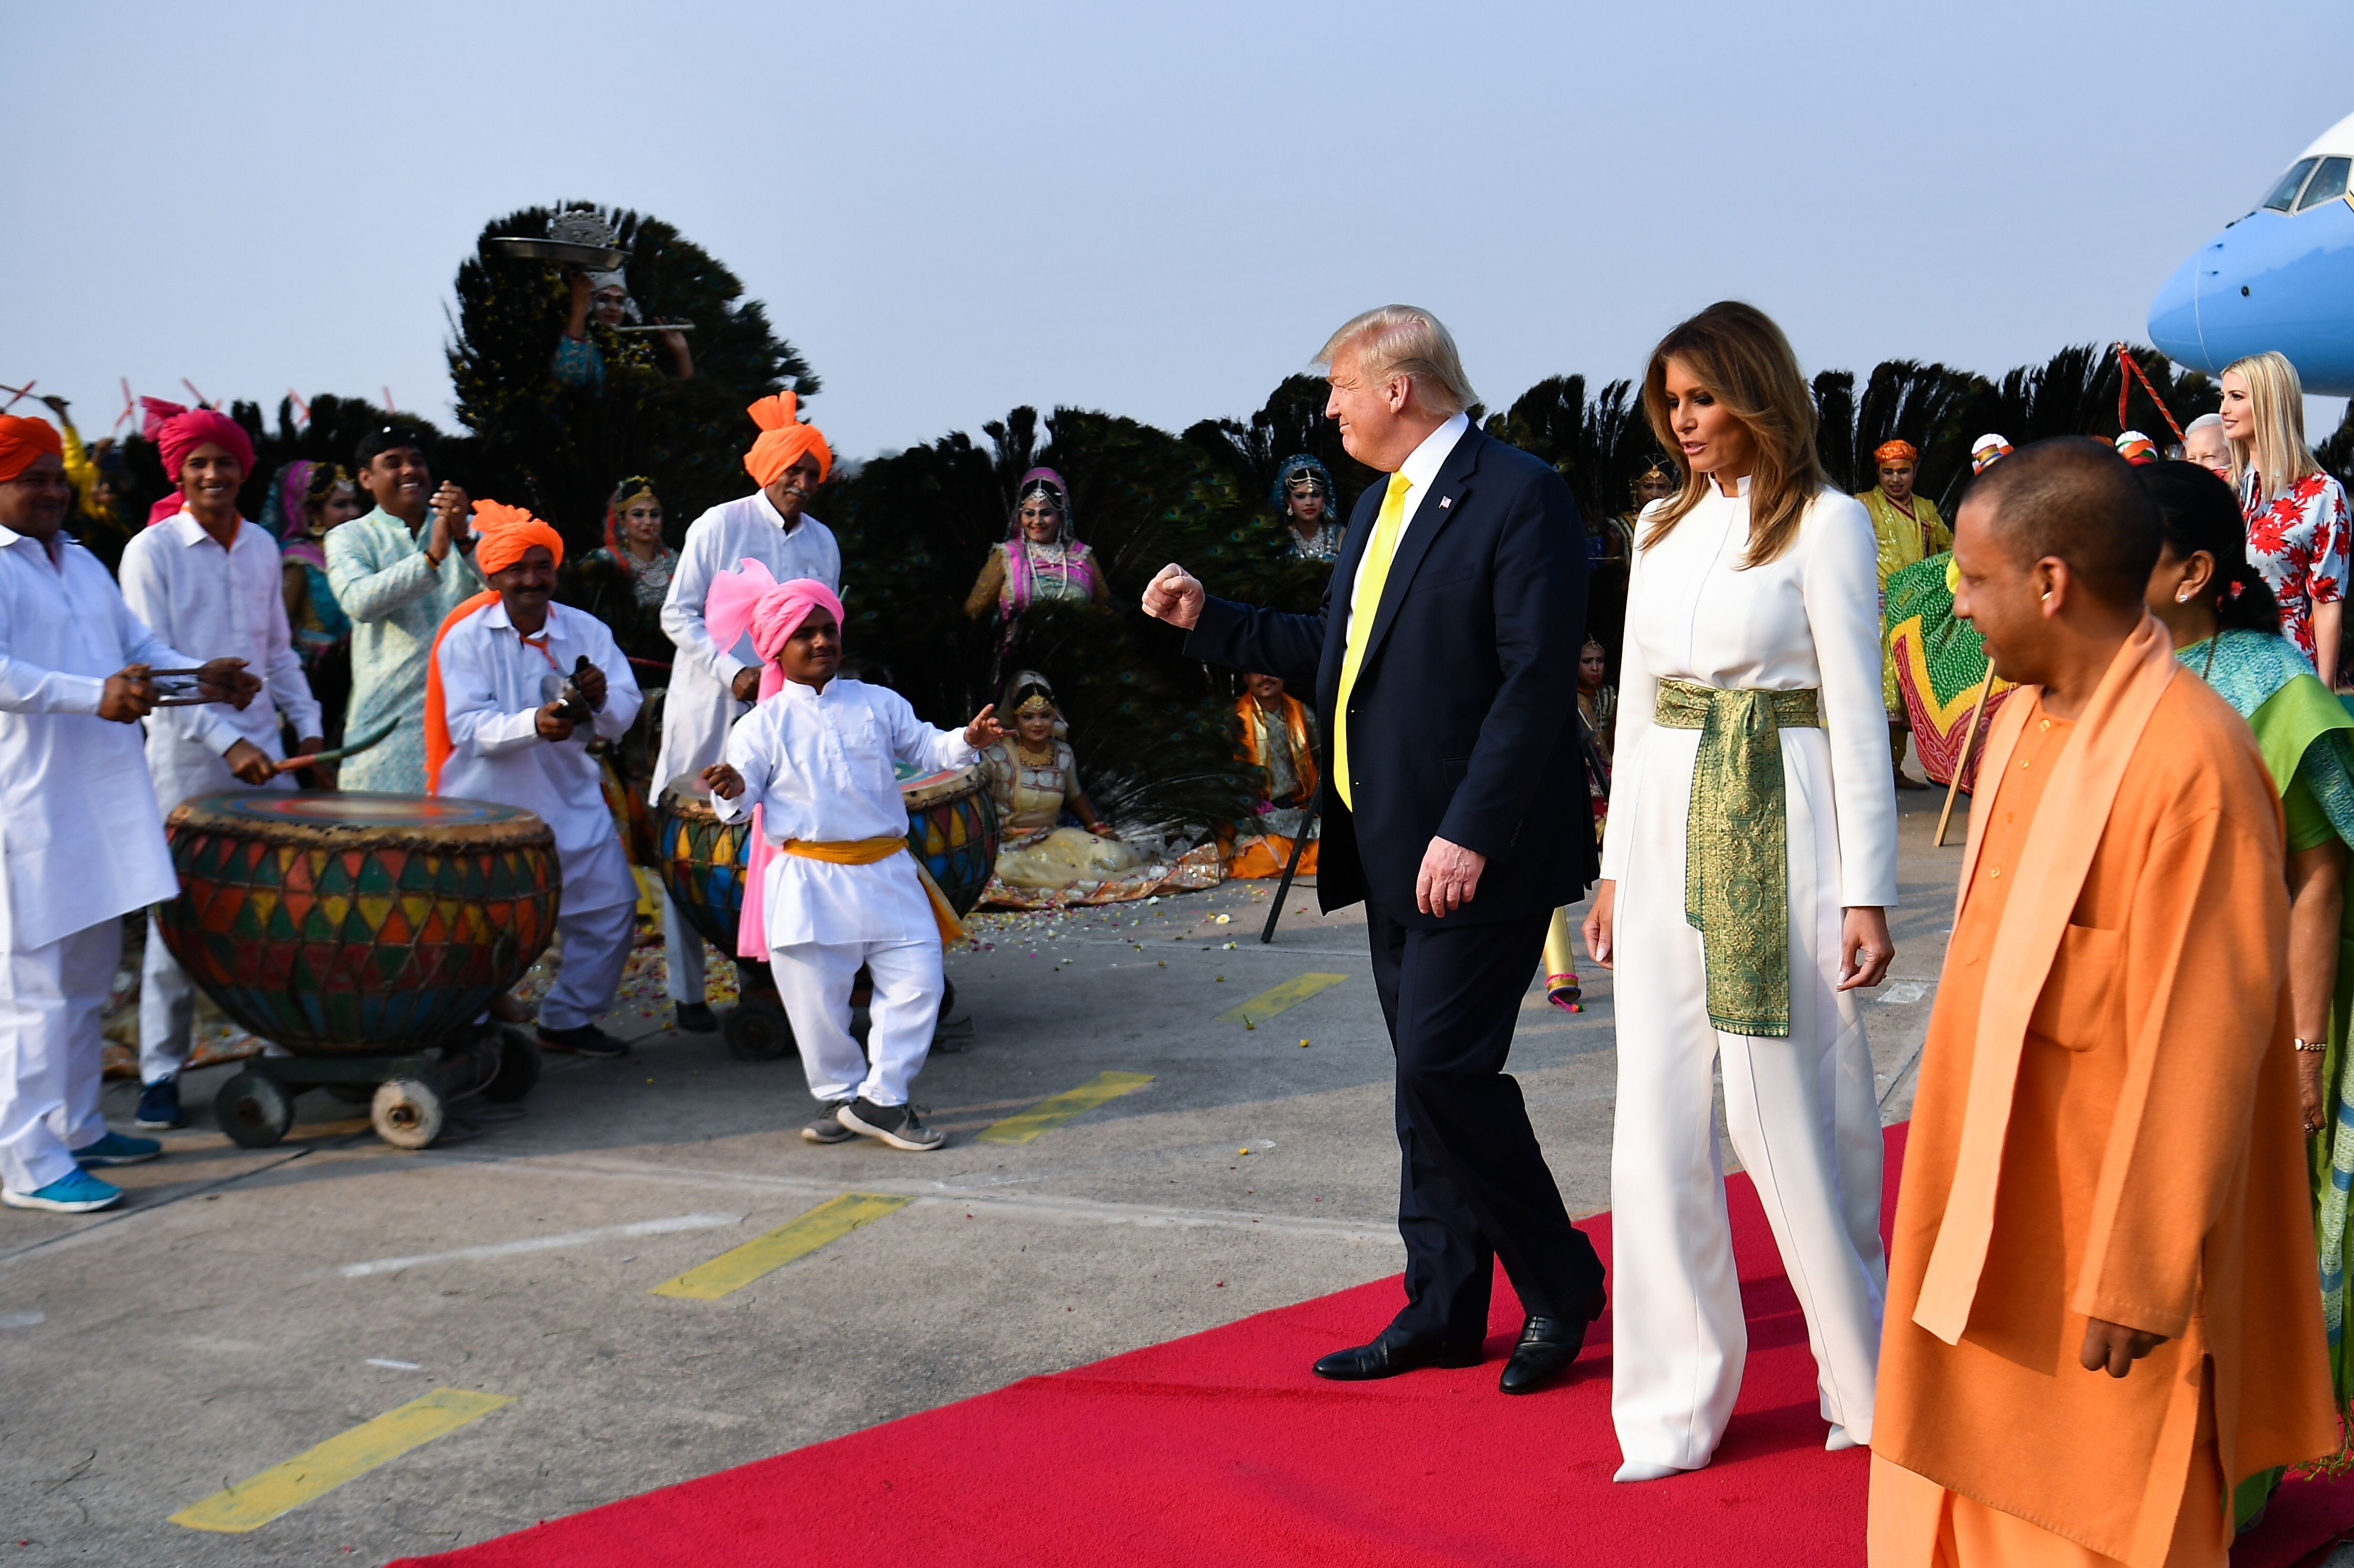 Performers wearing traditional costumes greet President and first lady Trump in Agra.